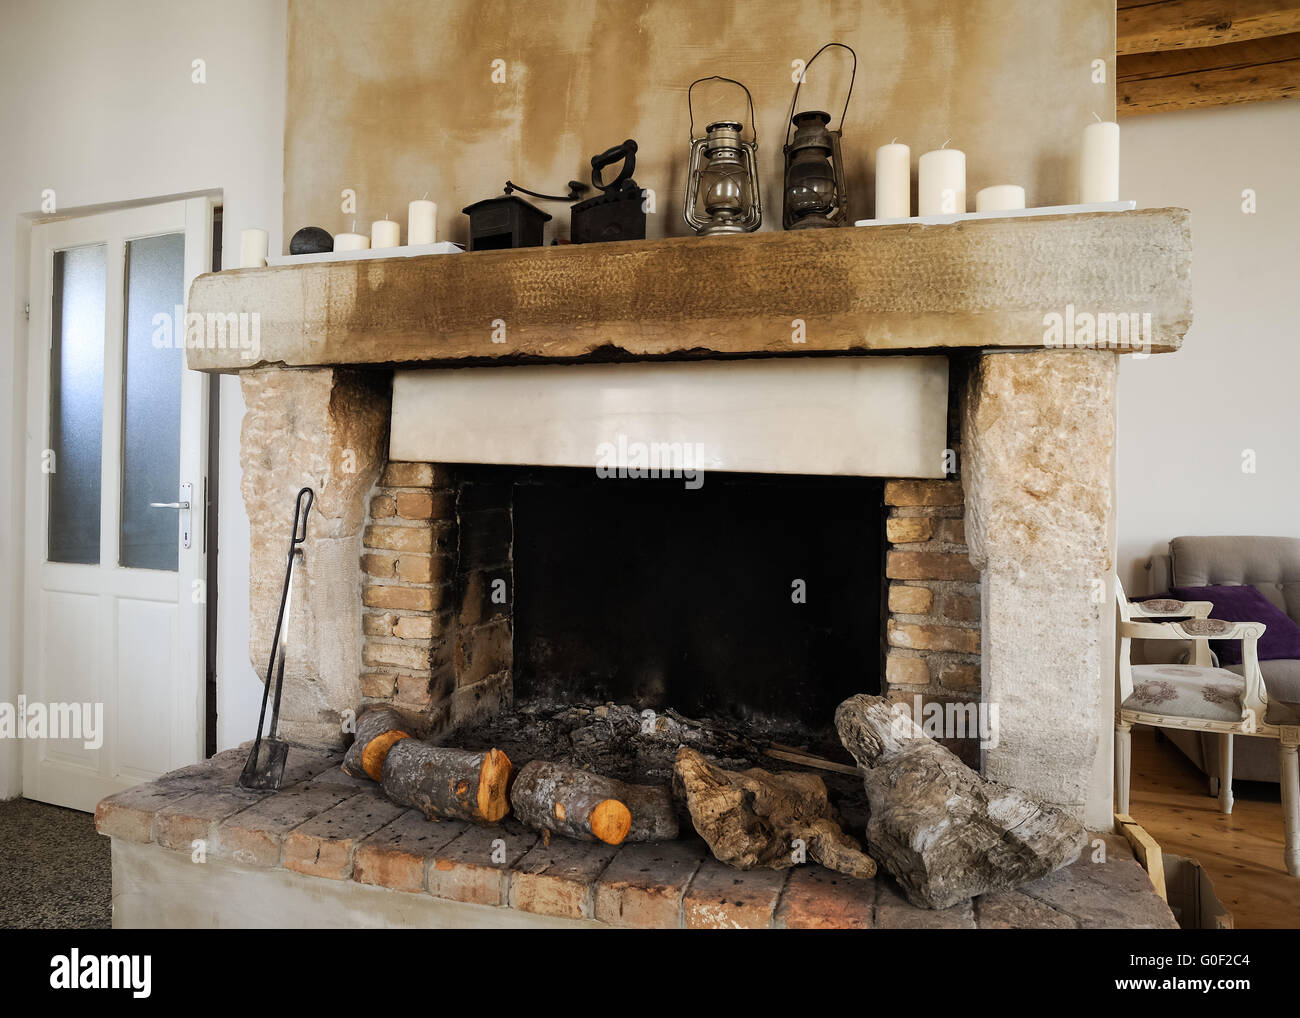 Fireplace in old house Stock Photo Royalty Free Image 103593396